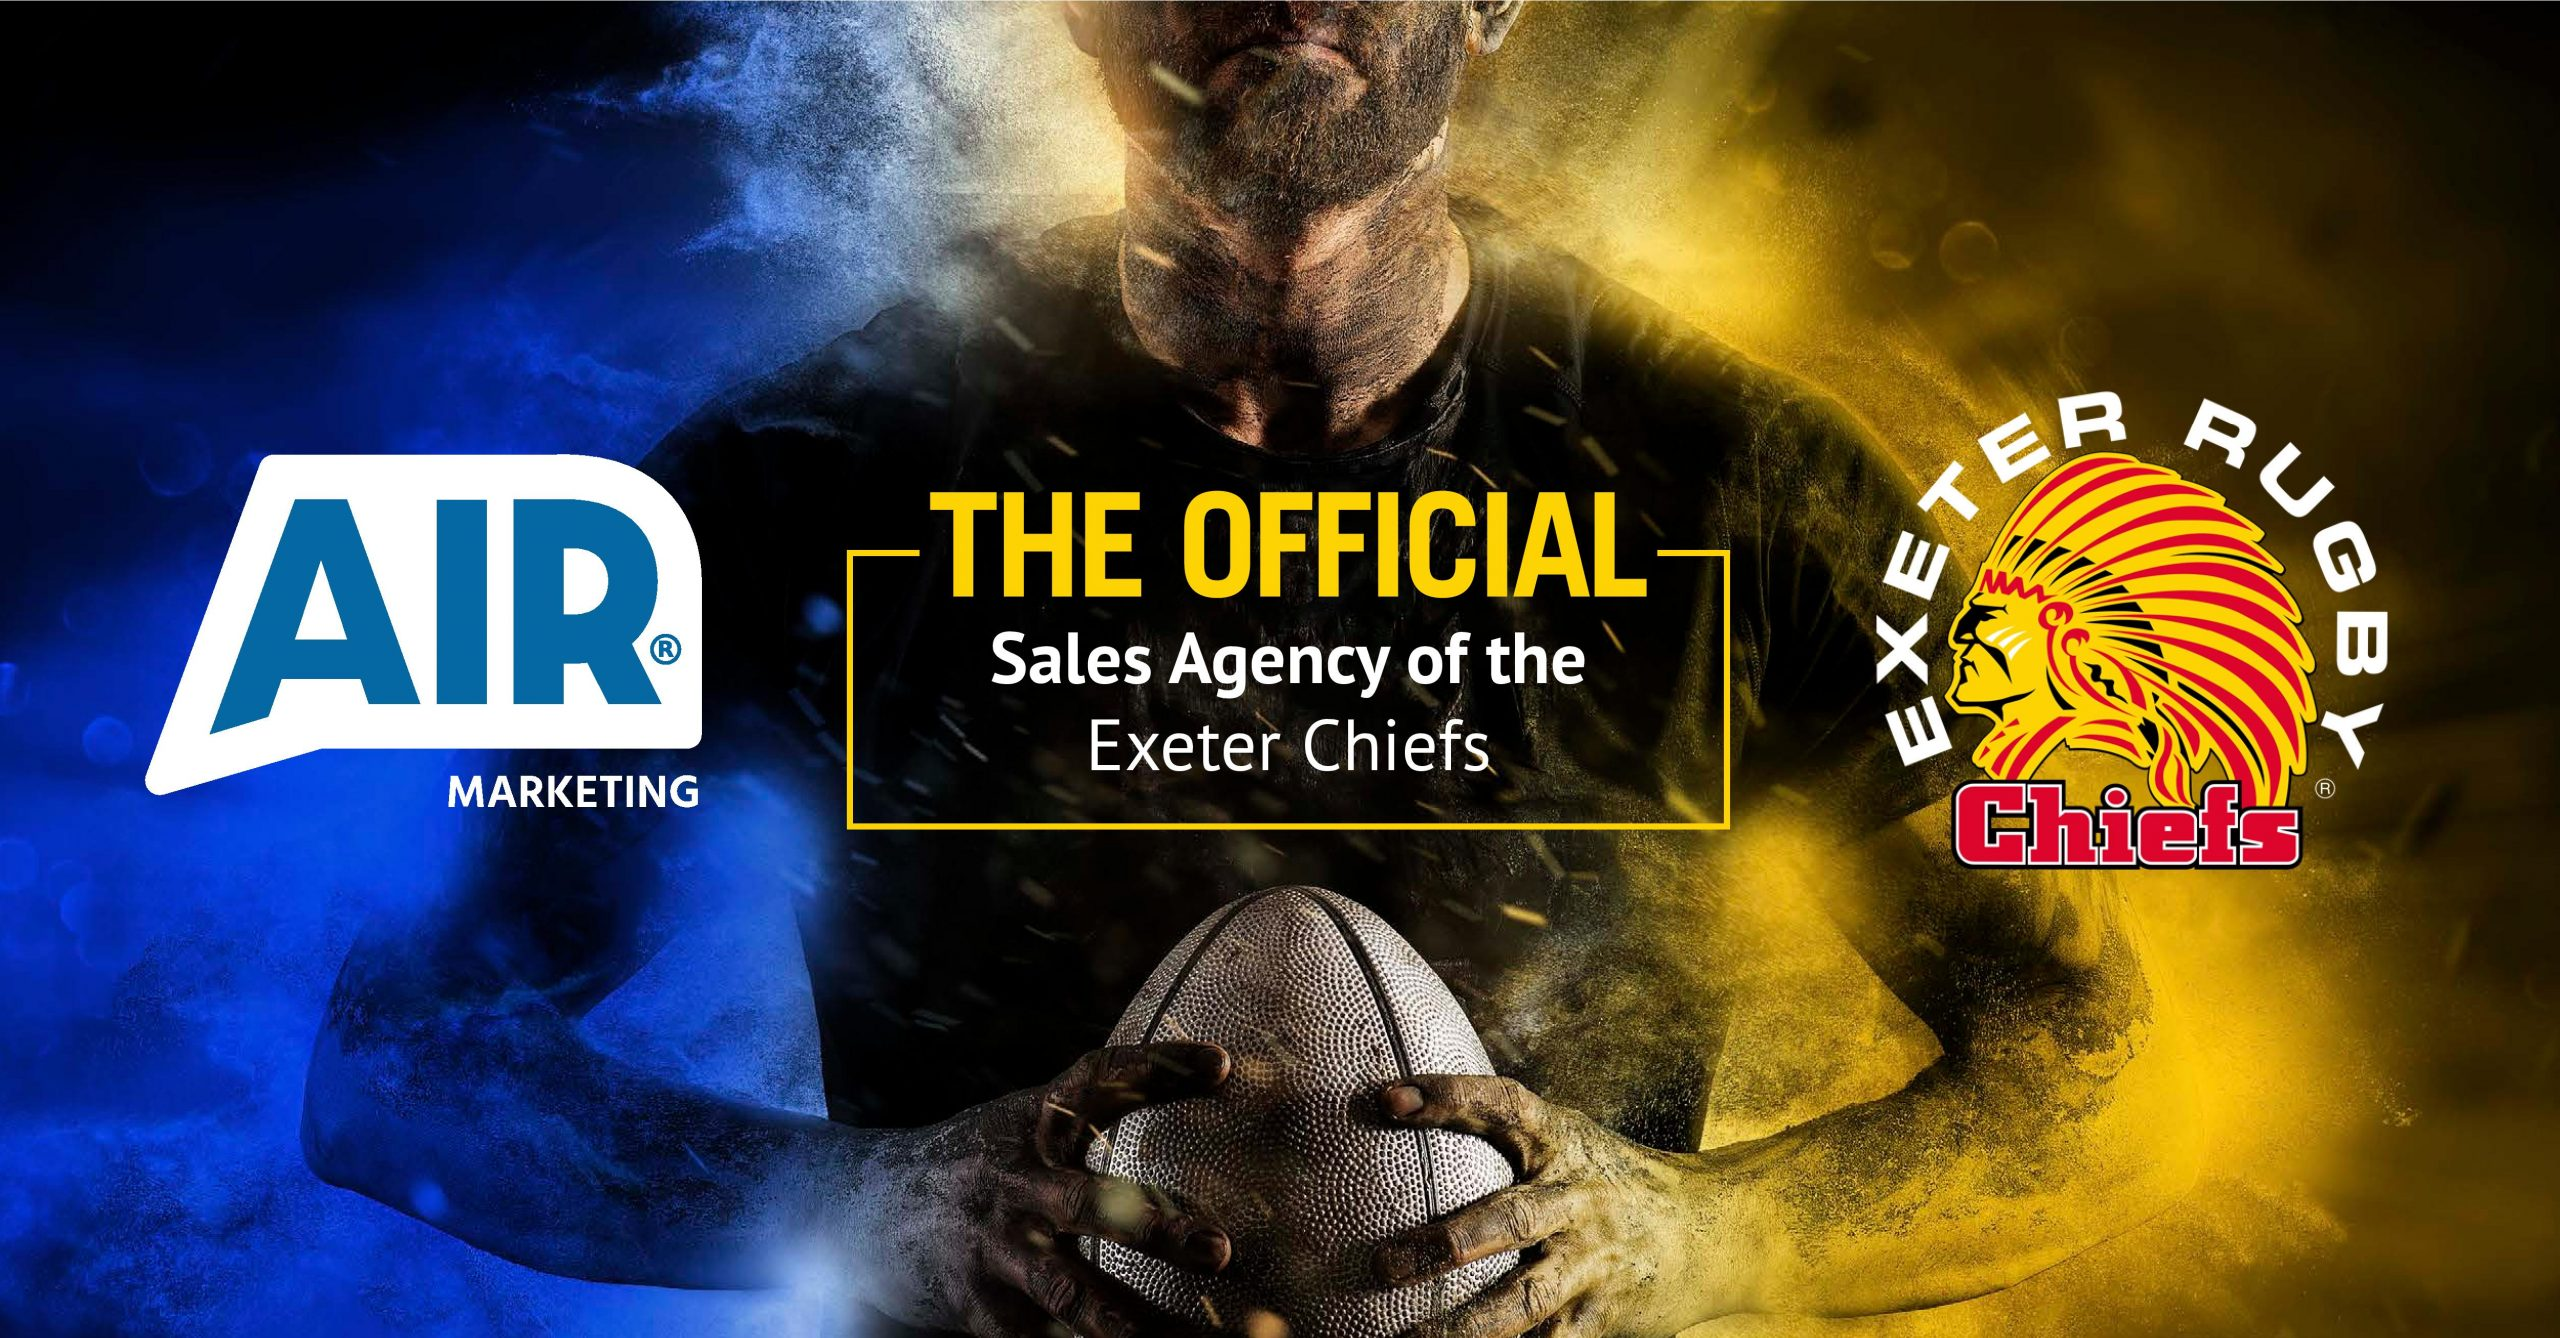 Exeter Chiefs Team Up With Air Marketing